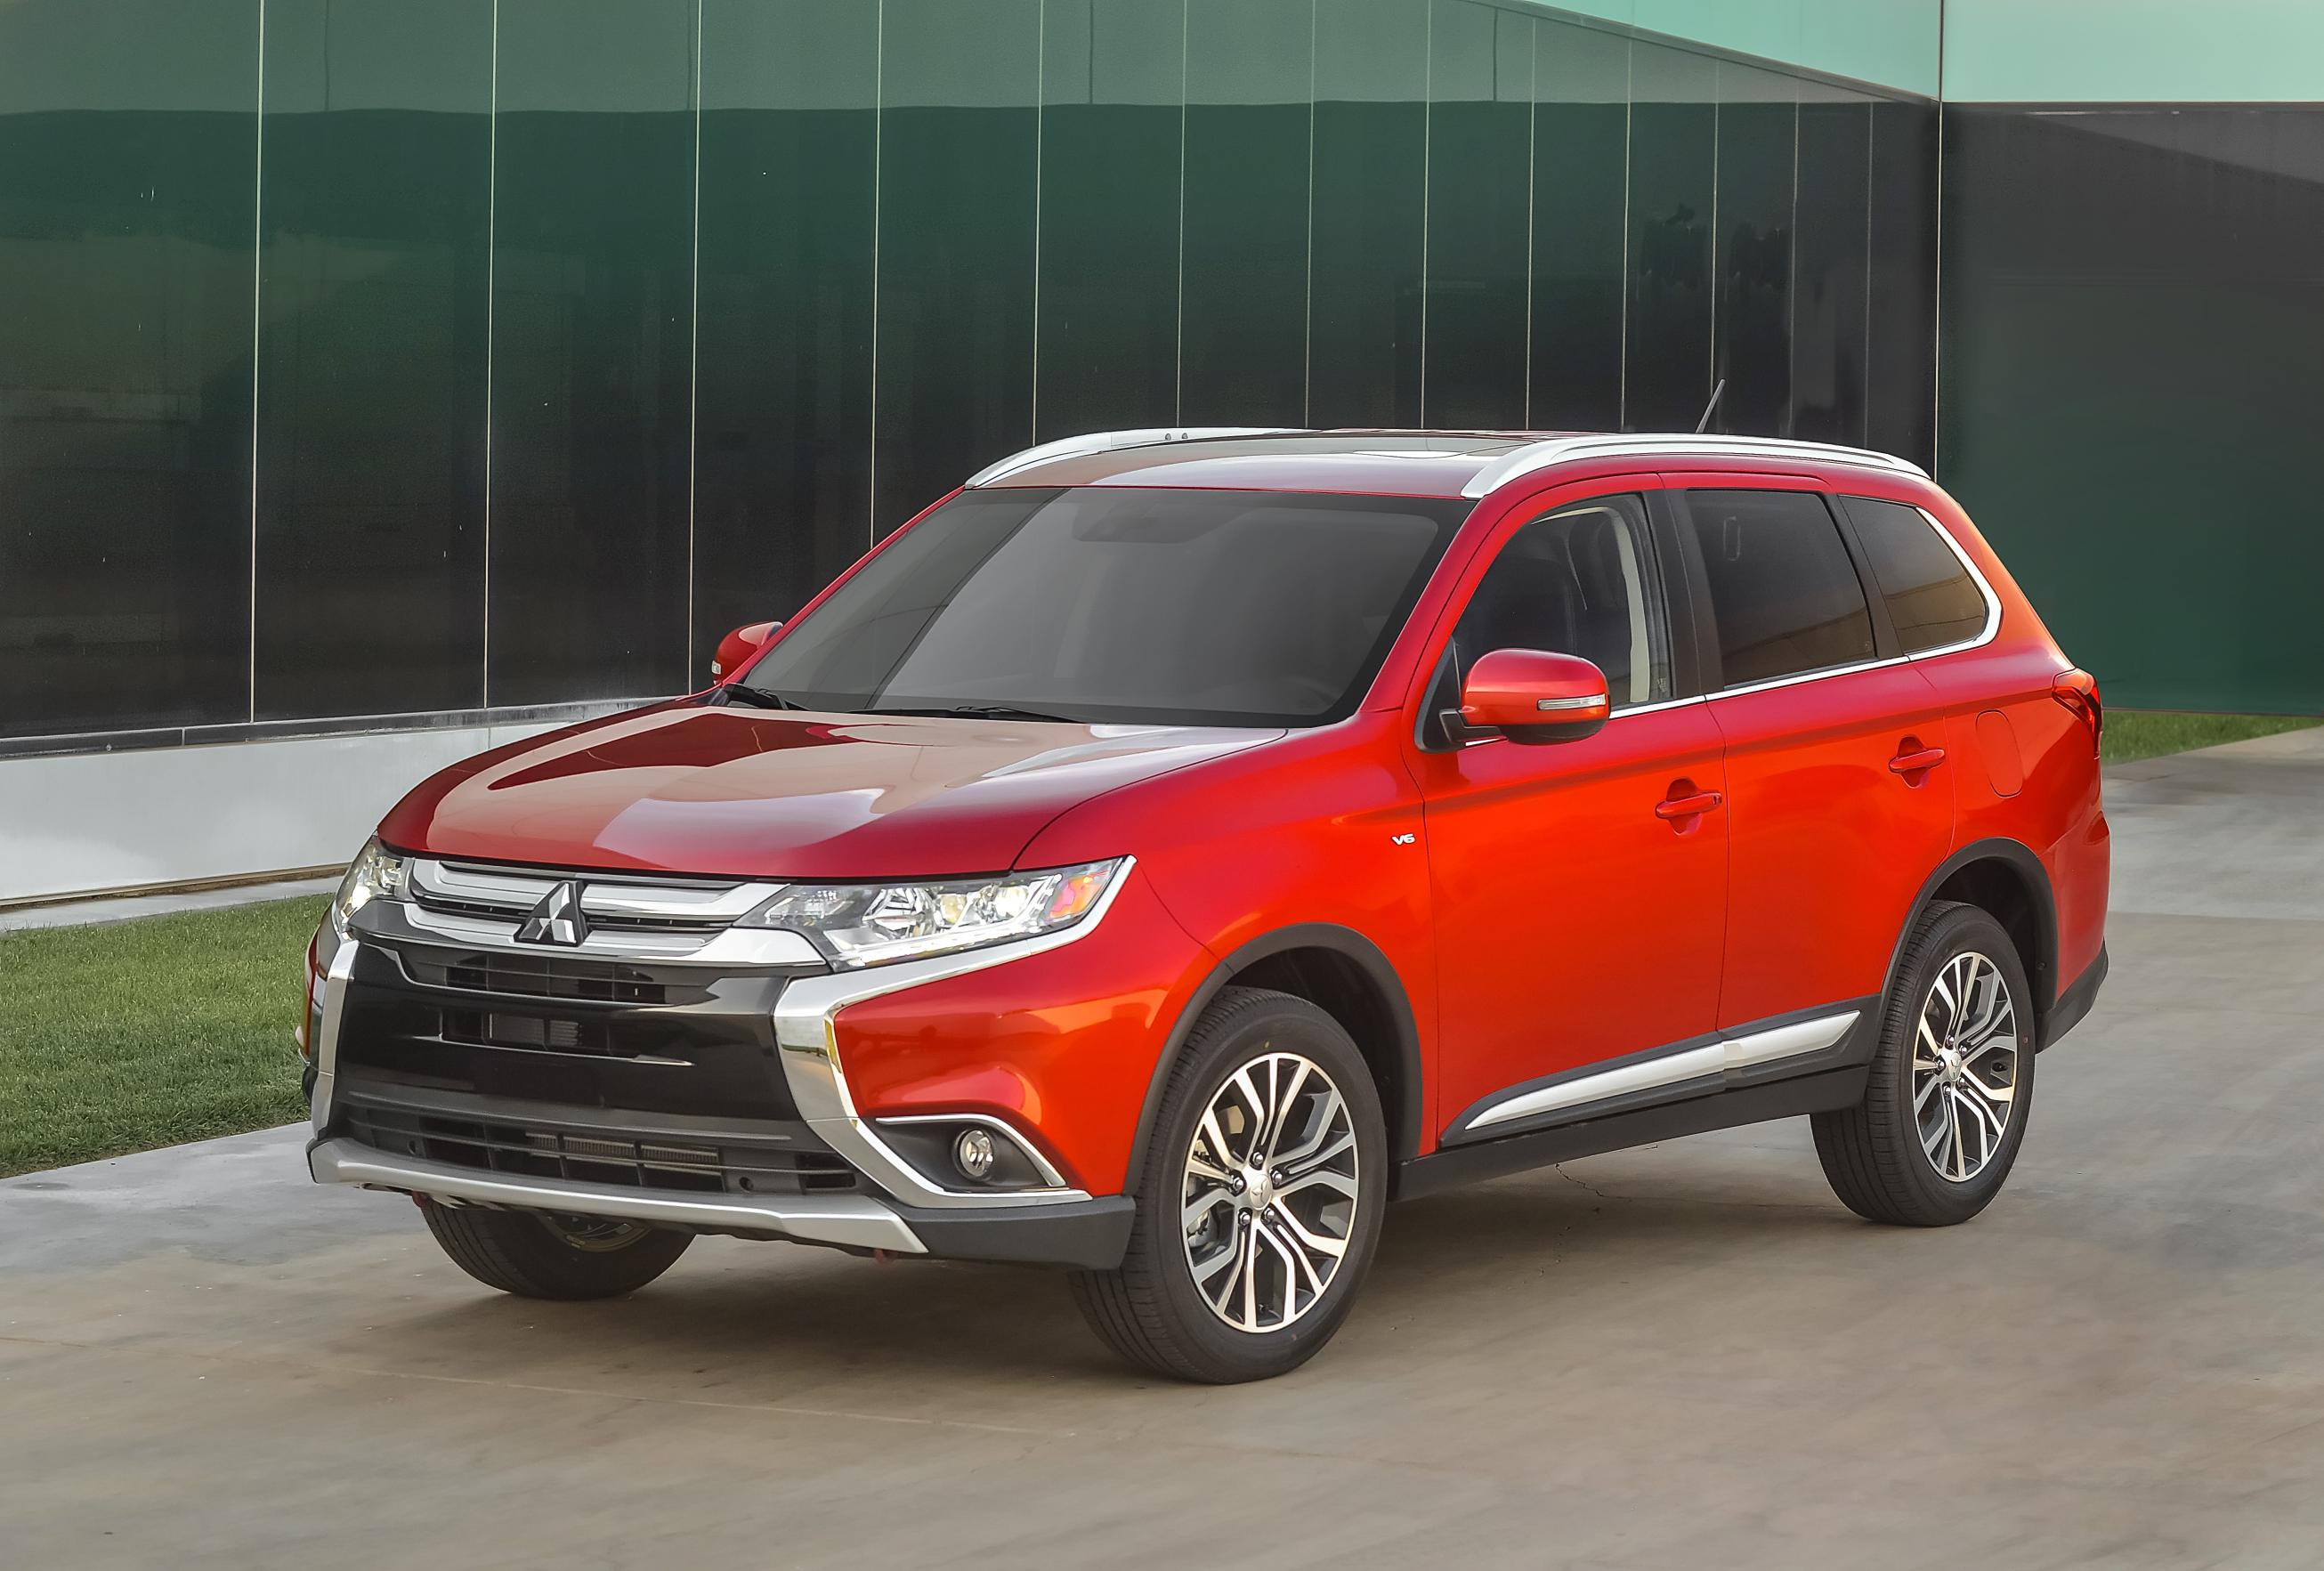 2016 Mitsubishi Outlander Features More of Everything ...